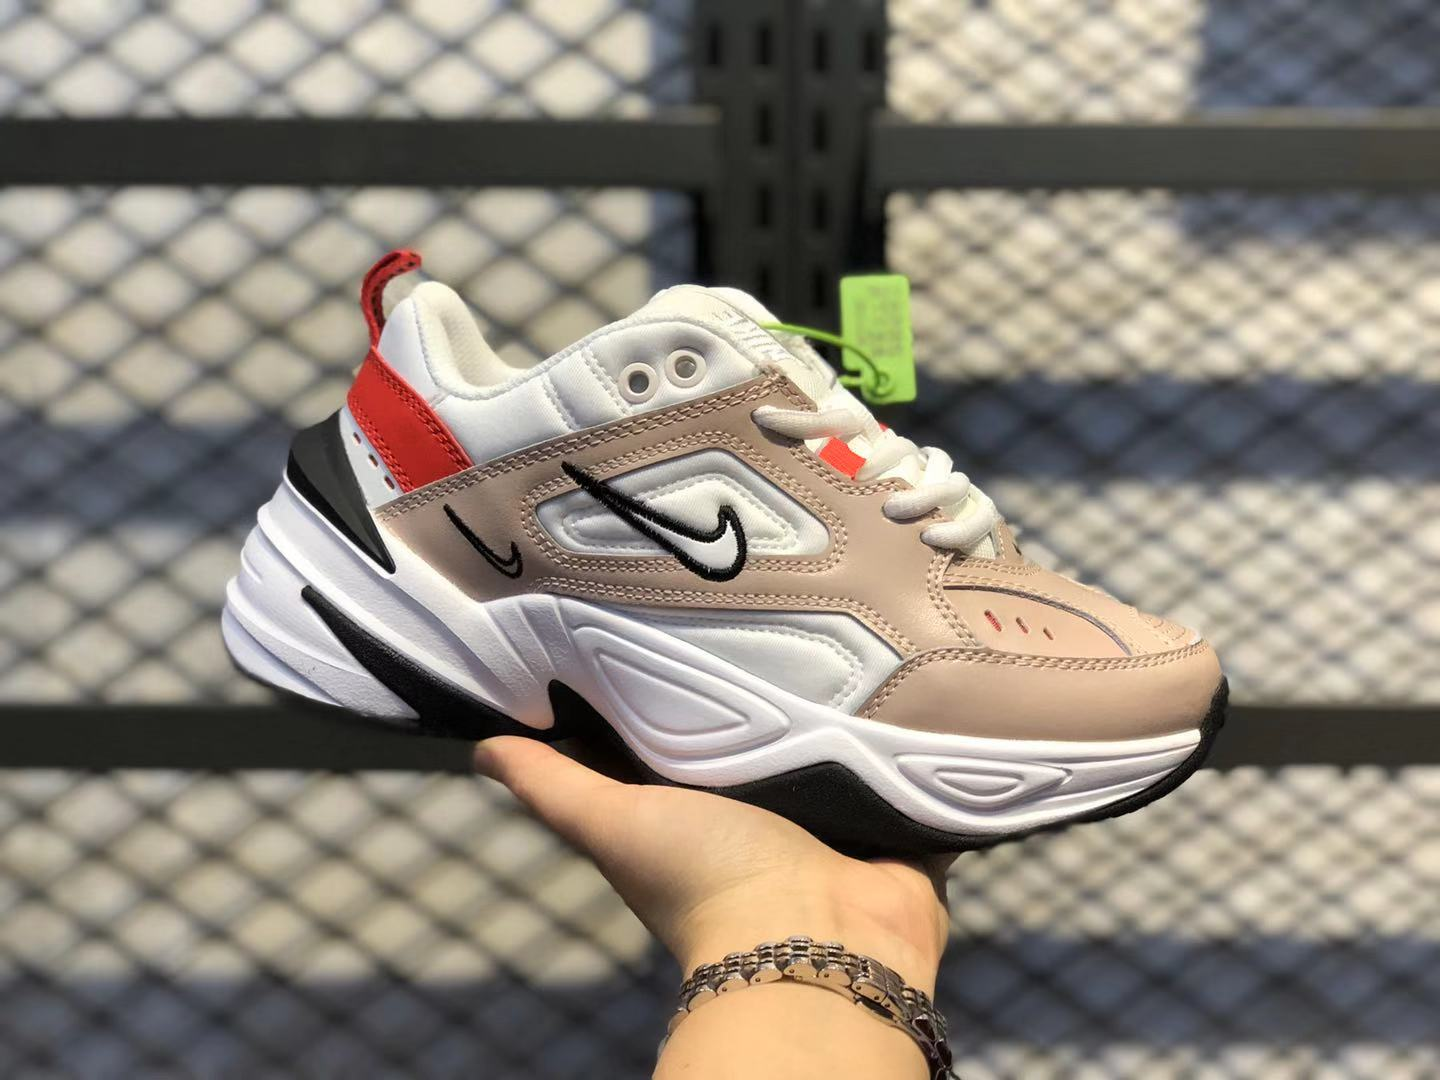 Nike WMNS M2K Tekno Fossil Stone/Summit White Sport Shoes In Stock AO3108-205